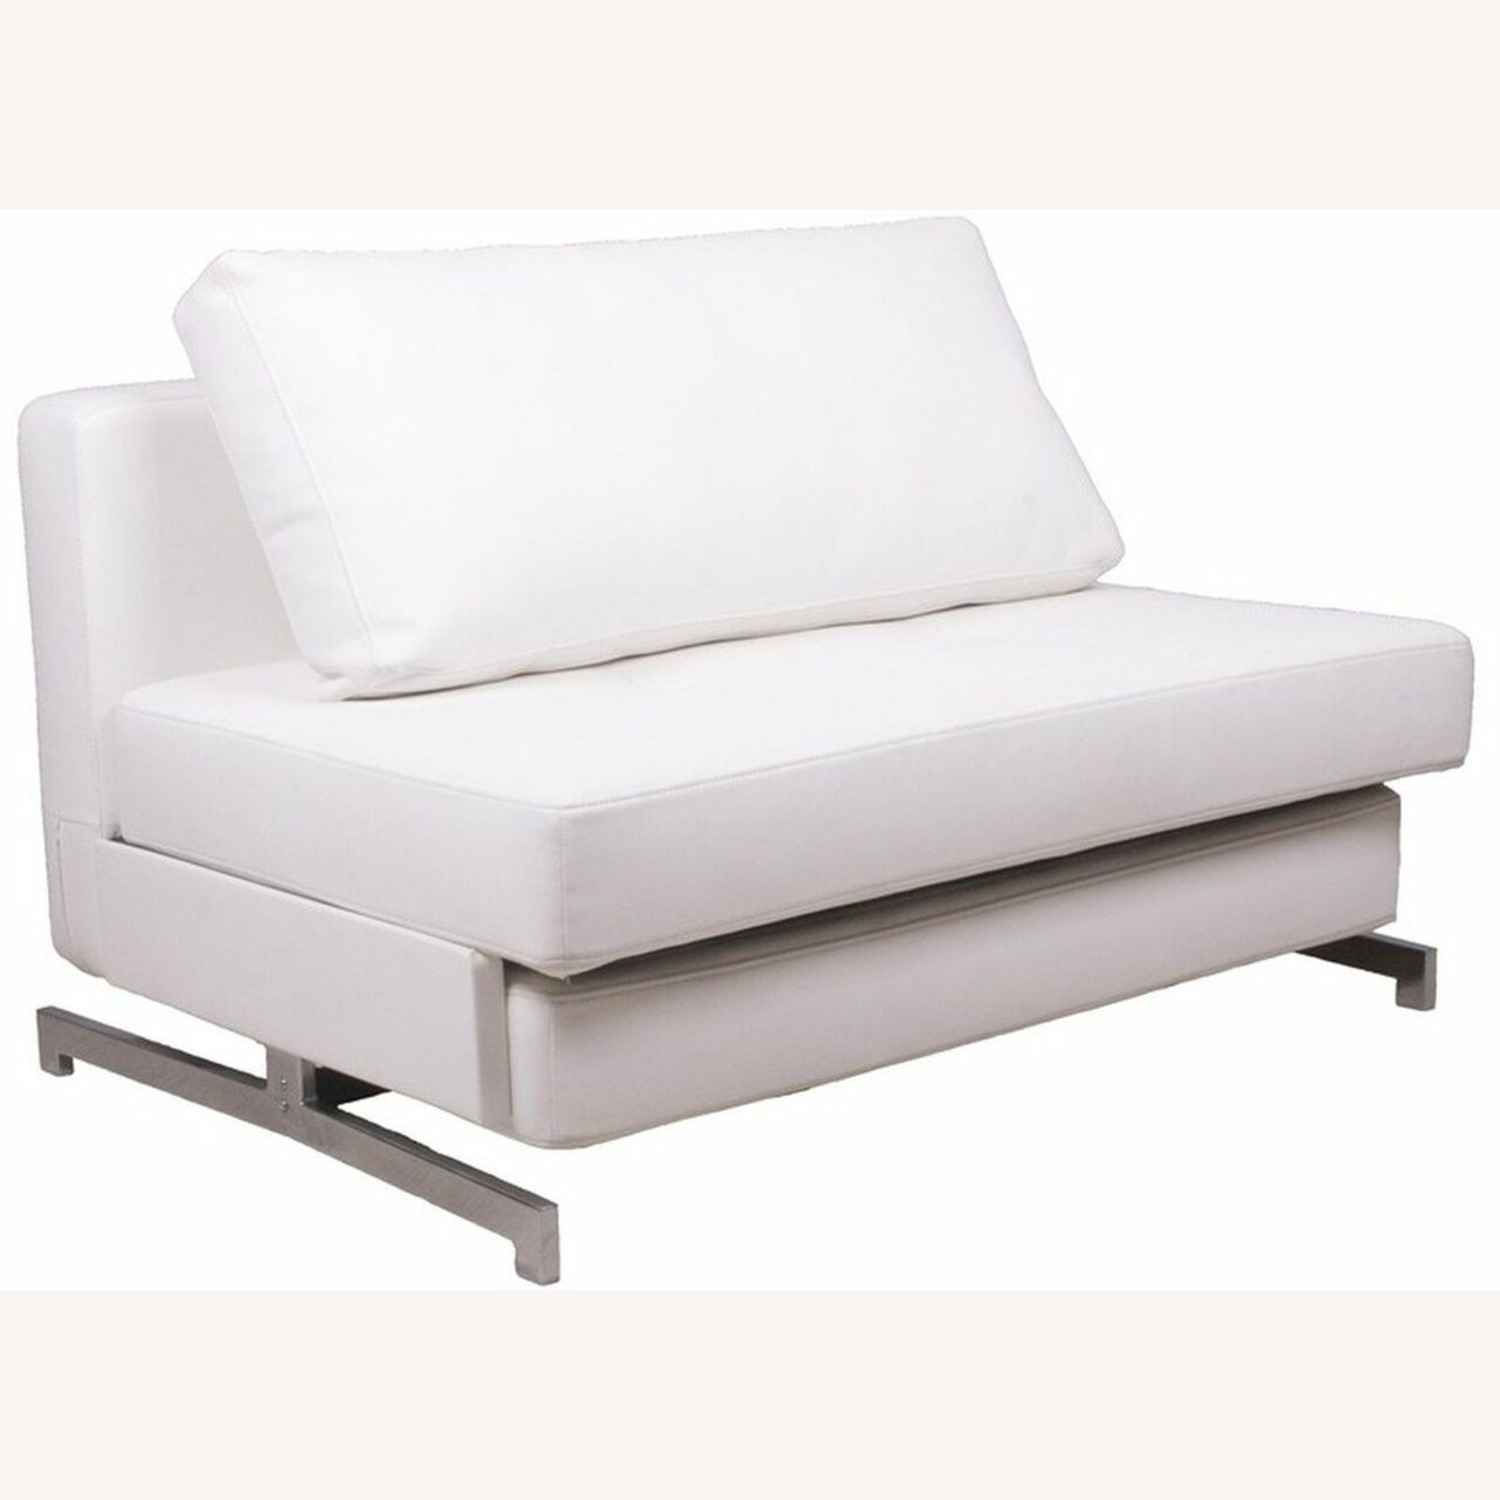 Sofa Bed In White Plush Upholstery W/ Steel Frame - image-0